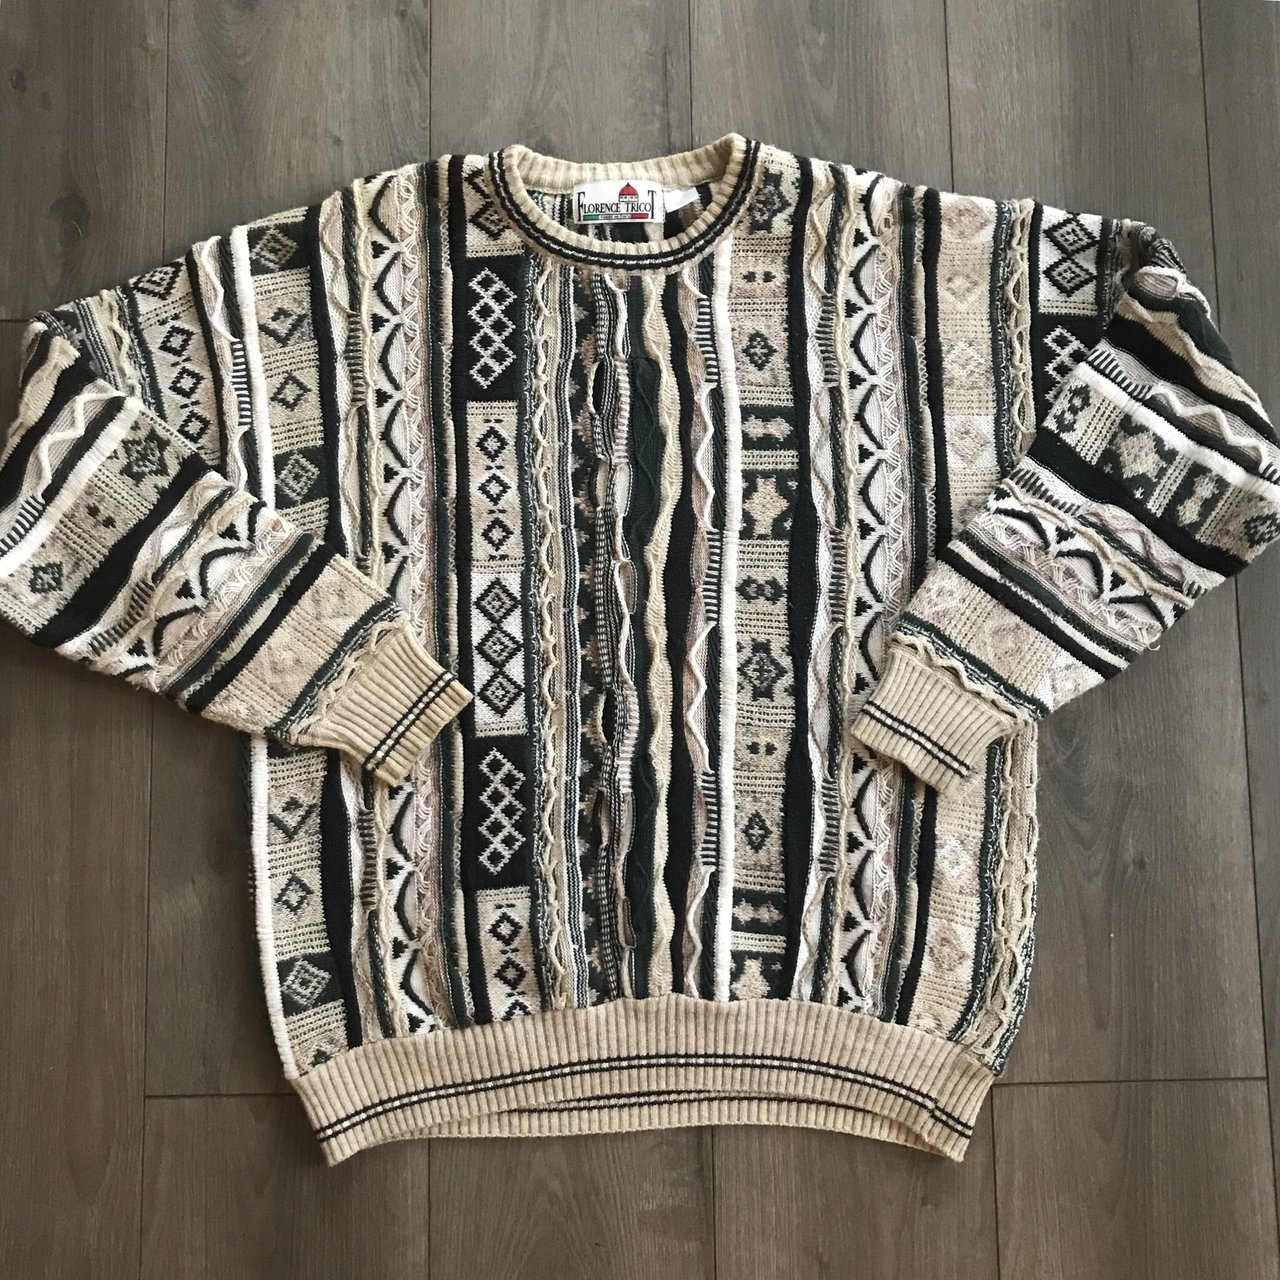 9b08930f47 COOGI Style sweater. Textures nuthin you ve seen b4. Rlly up - Depop